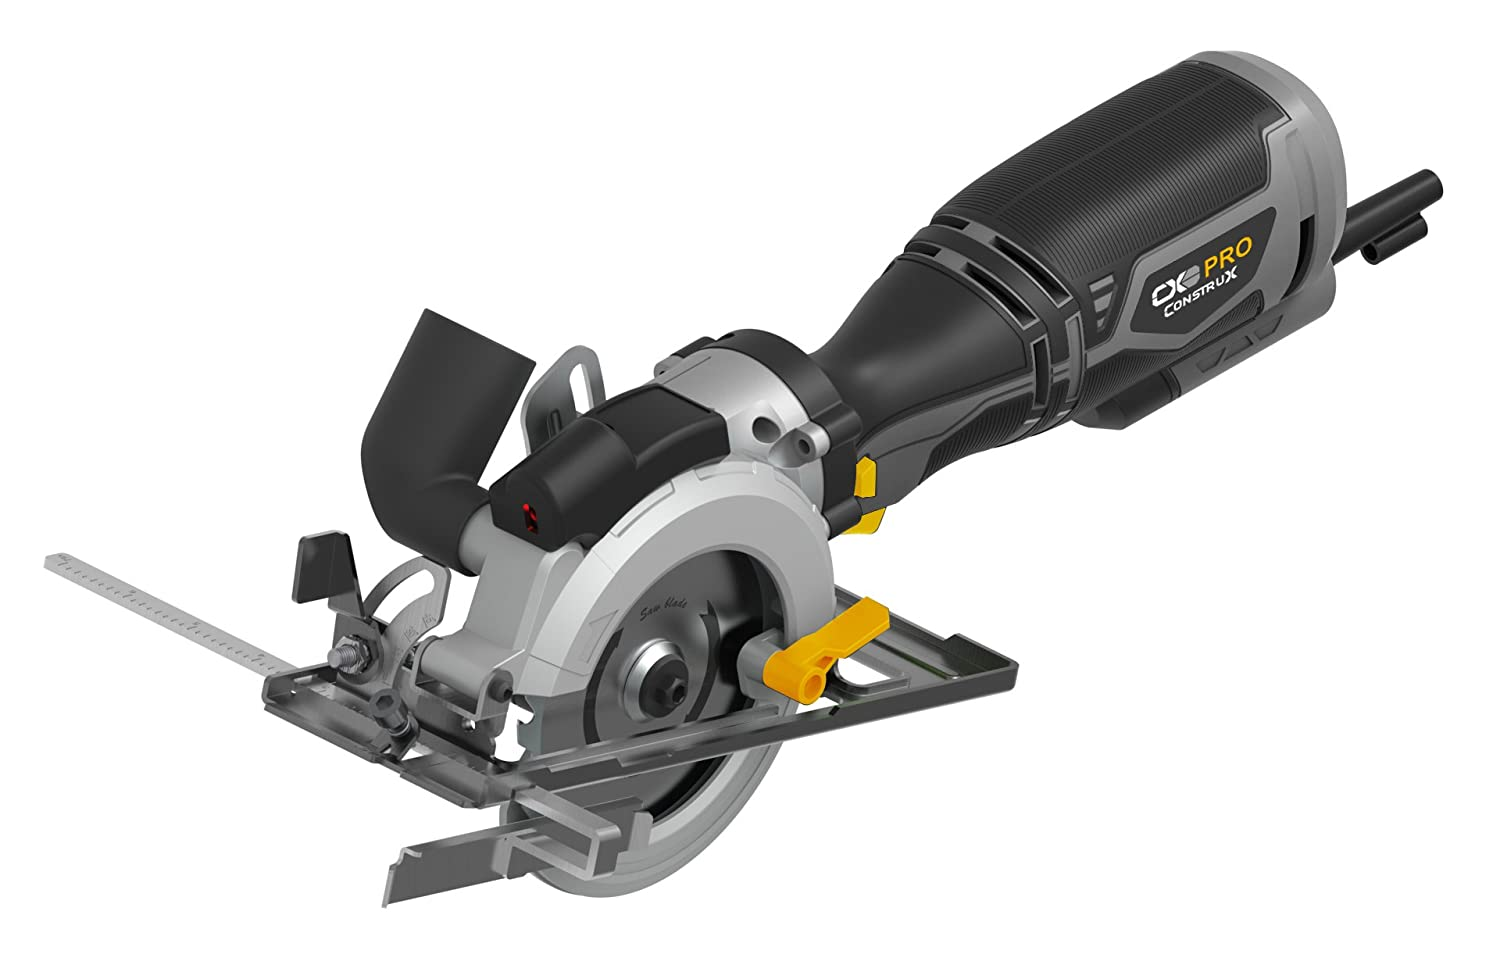 CX PRO 4 1 2 5.8 Amp COMPACT Circular Saw with Laser Guide